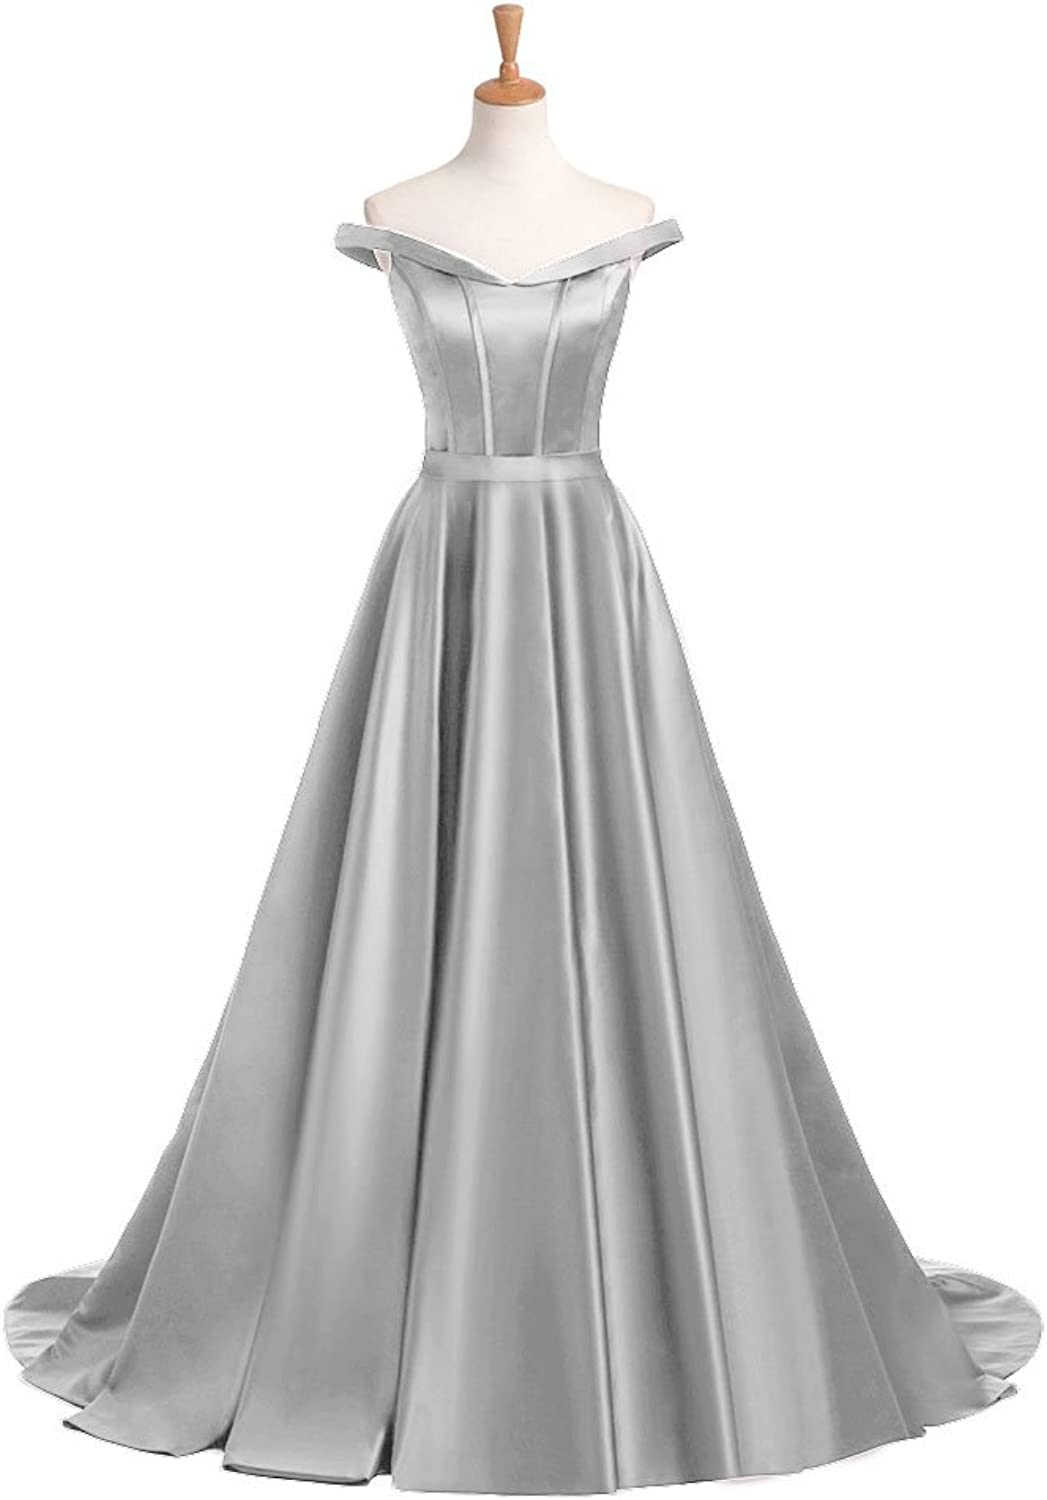 Aishanglina Satin OffShoulder Prom Wedding Dress for Women